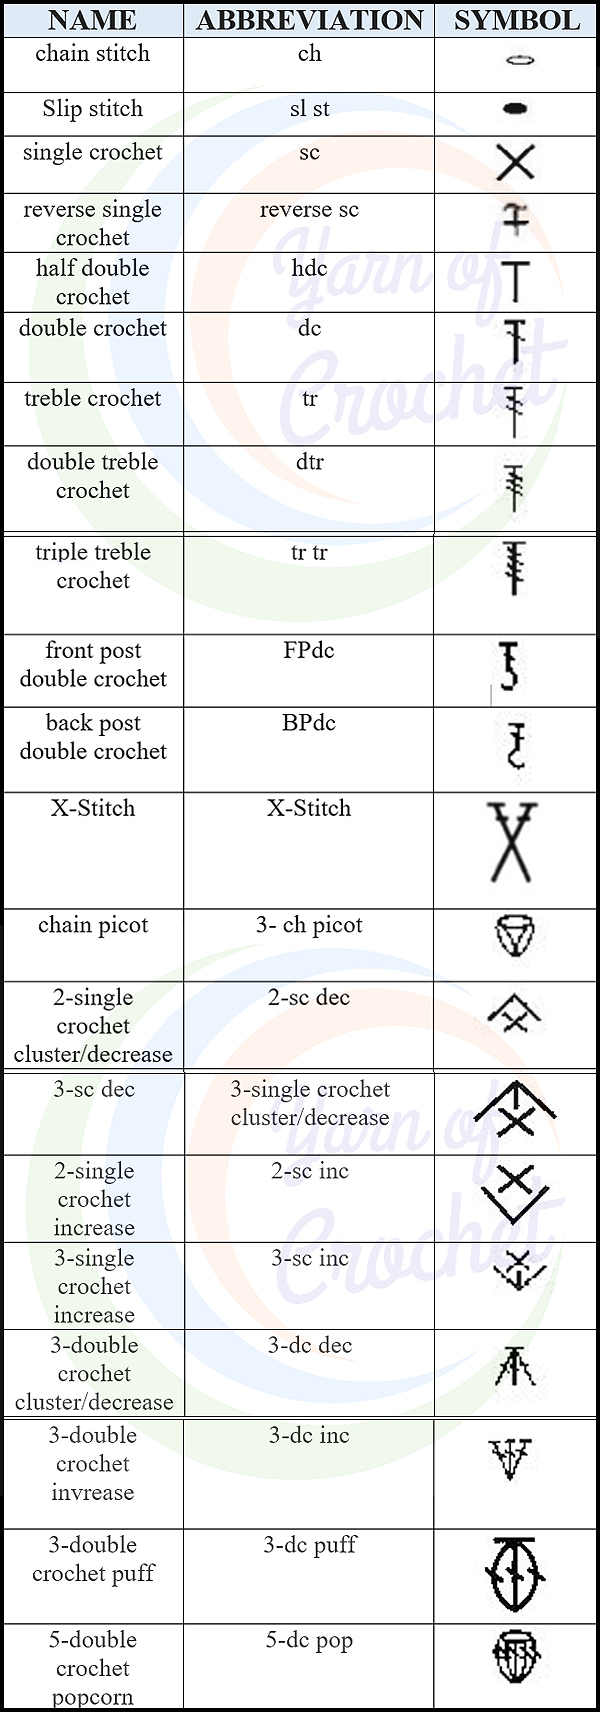 See a complete table with the most commonly used crochet stitches. With abbreviations and symbols to follow graphs and grade patterns - Yarn of Crochet in freecrochetfashion.com